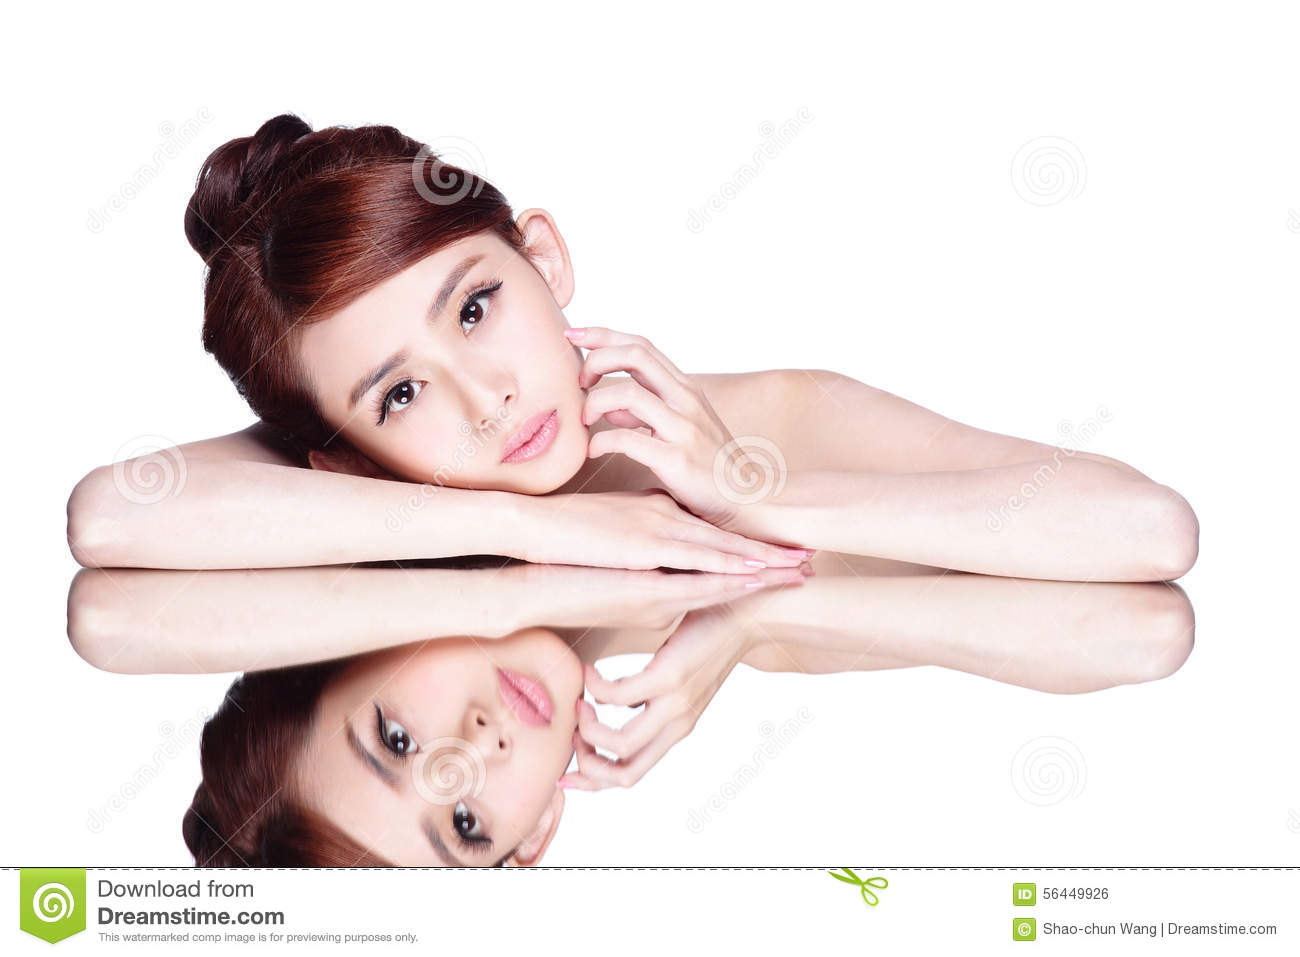 Surname asian woman face down